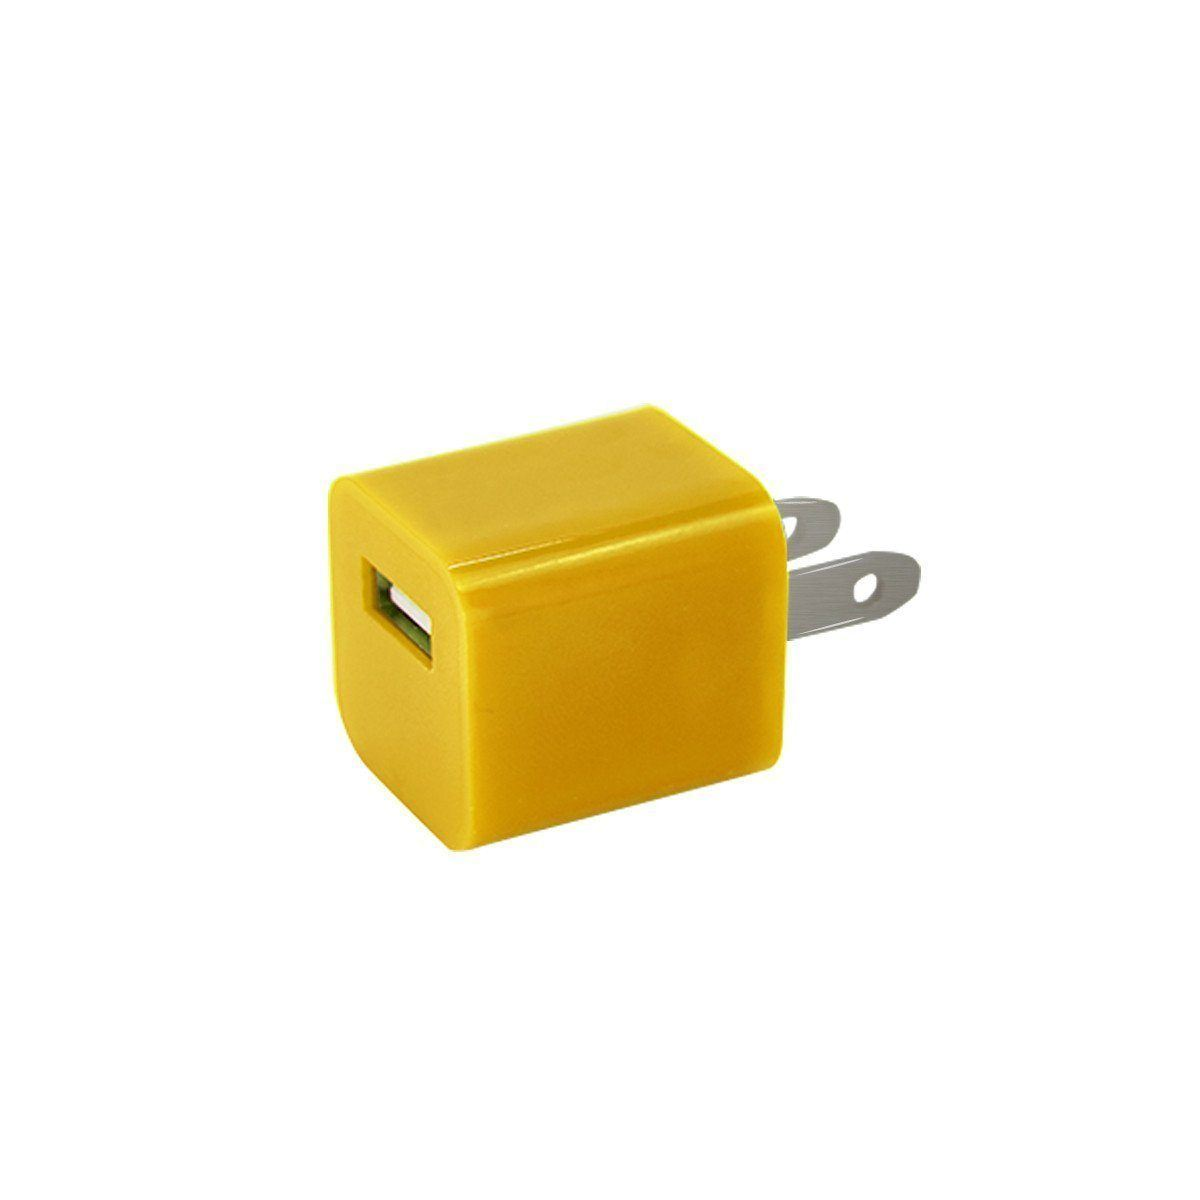 Wall Charger - Yellow